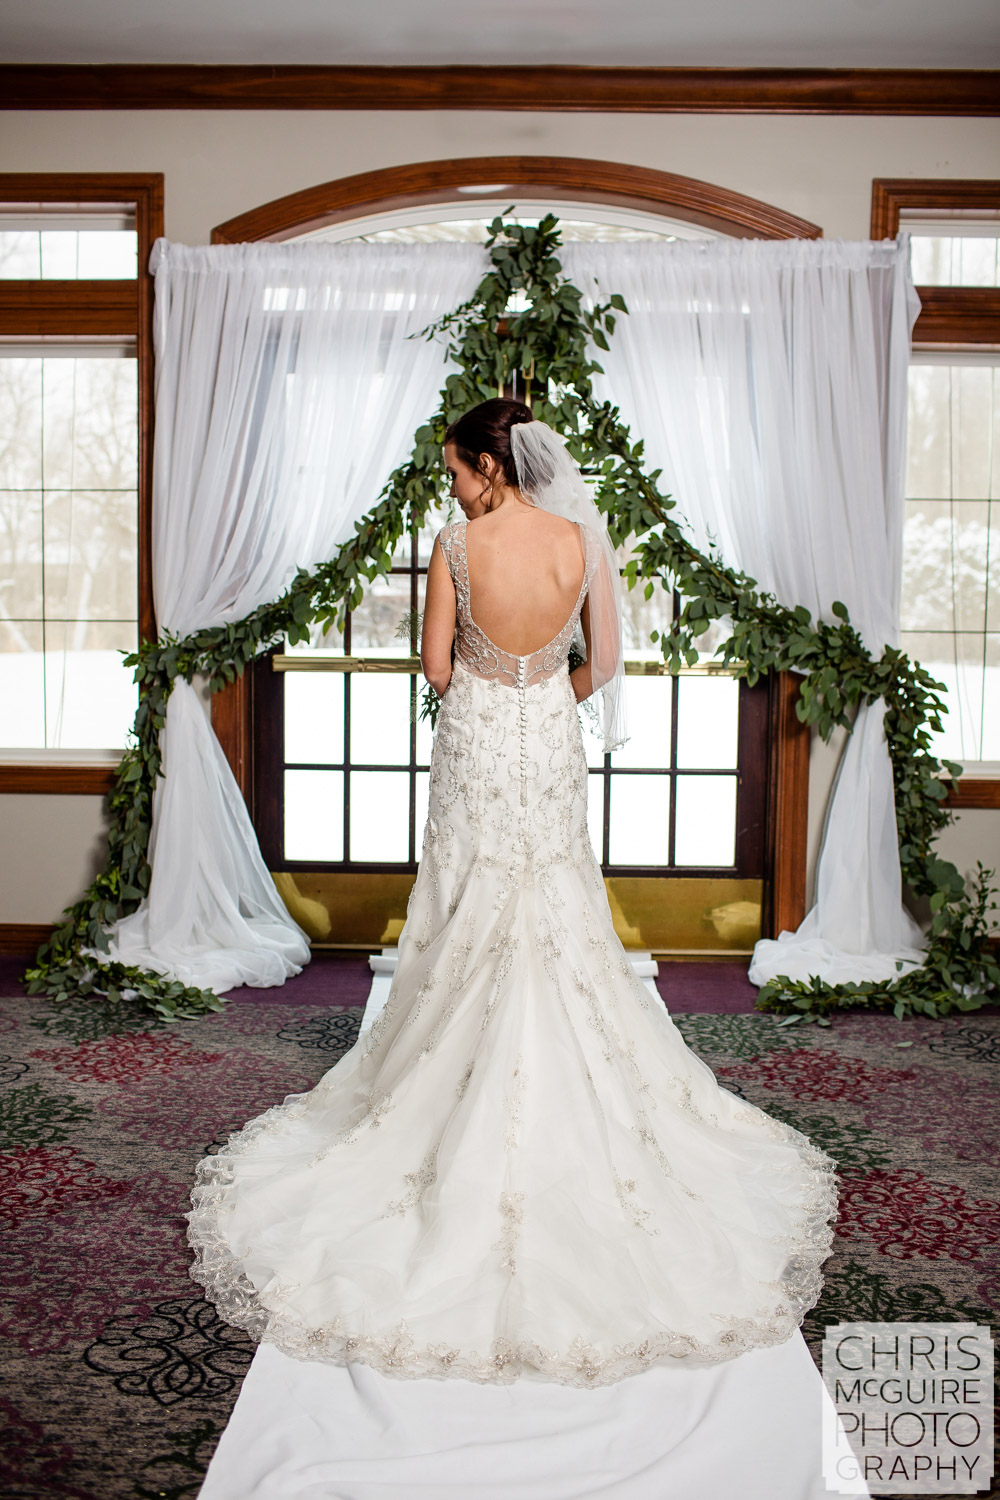 Bride backless dress at winter wedding